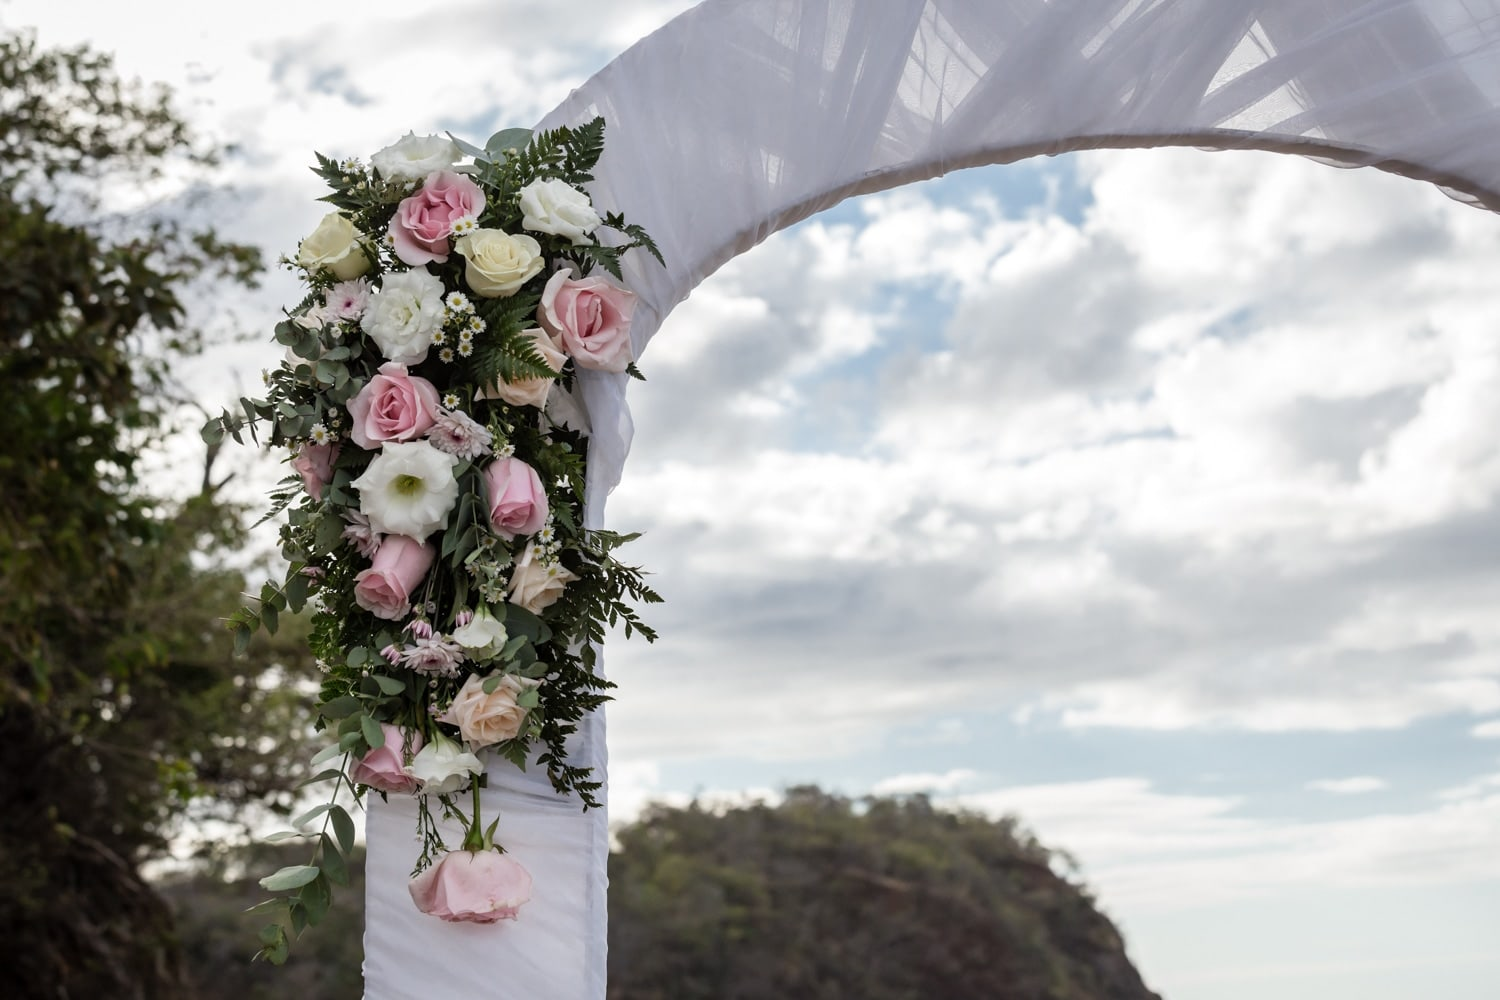 Wedding ceremony arch on beach decorated with gorgeous floral bouquet.